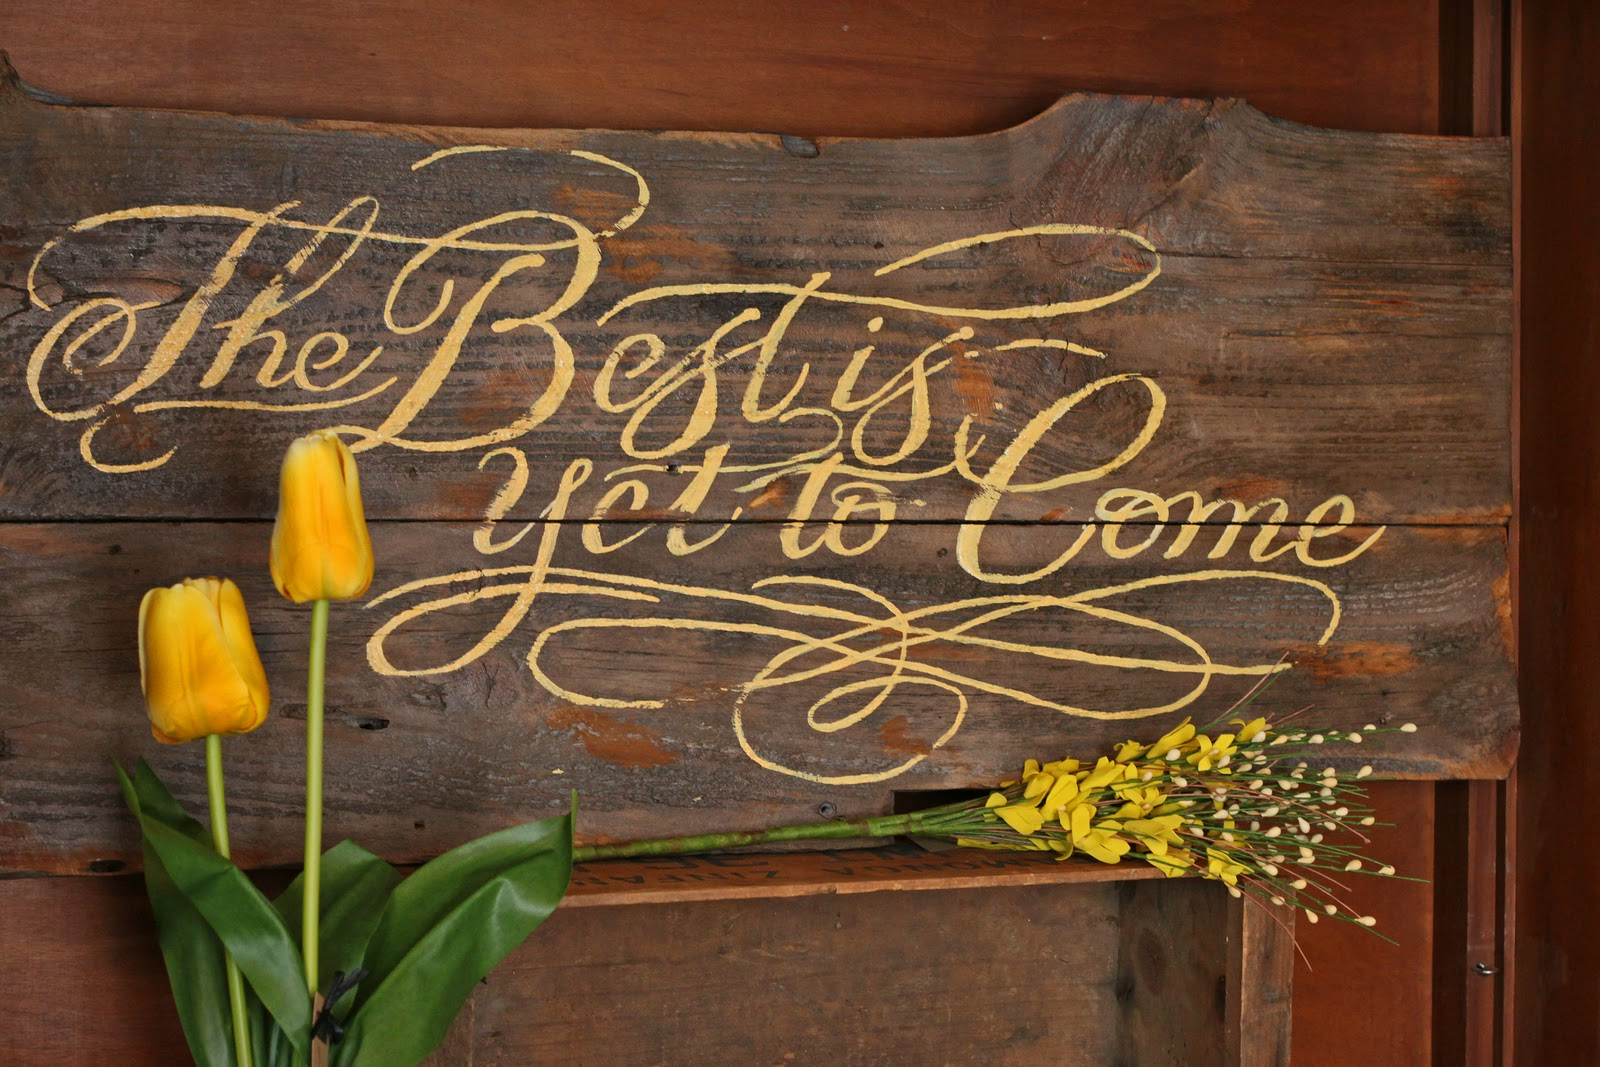 Quotes #quote #yellow #rustic #country #best #yet #come